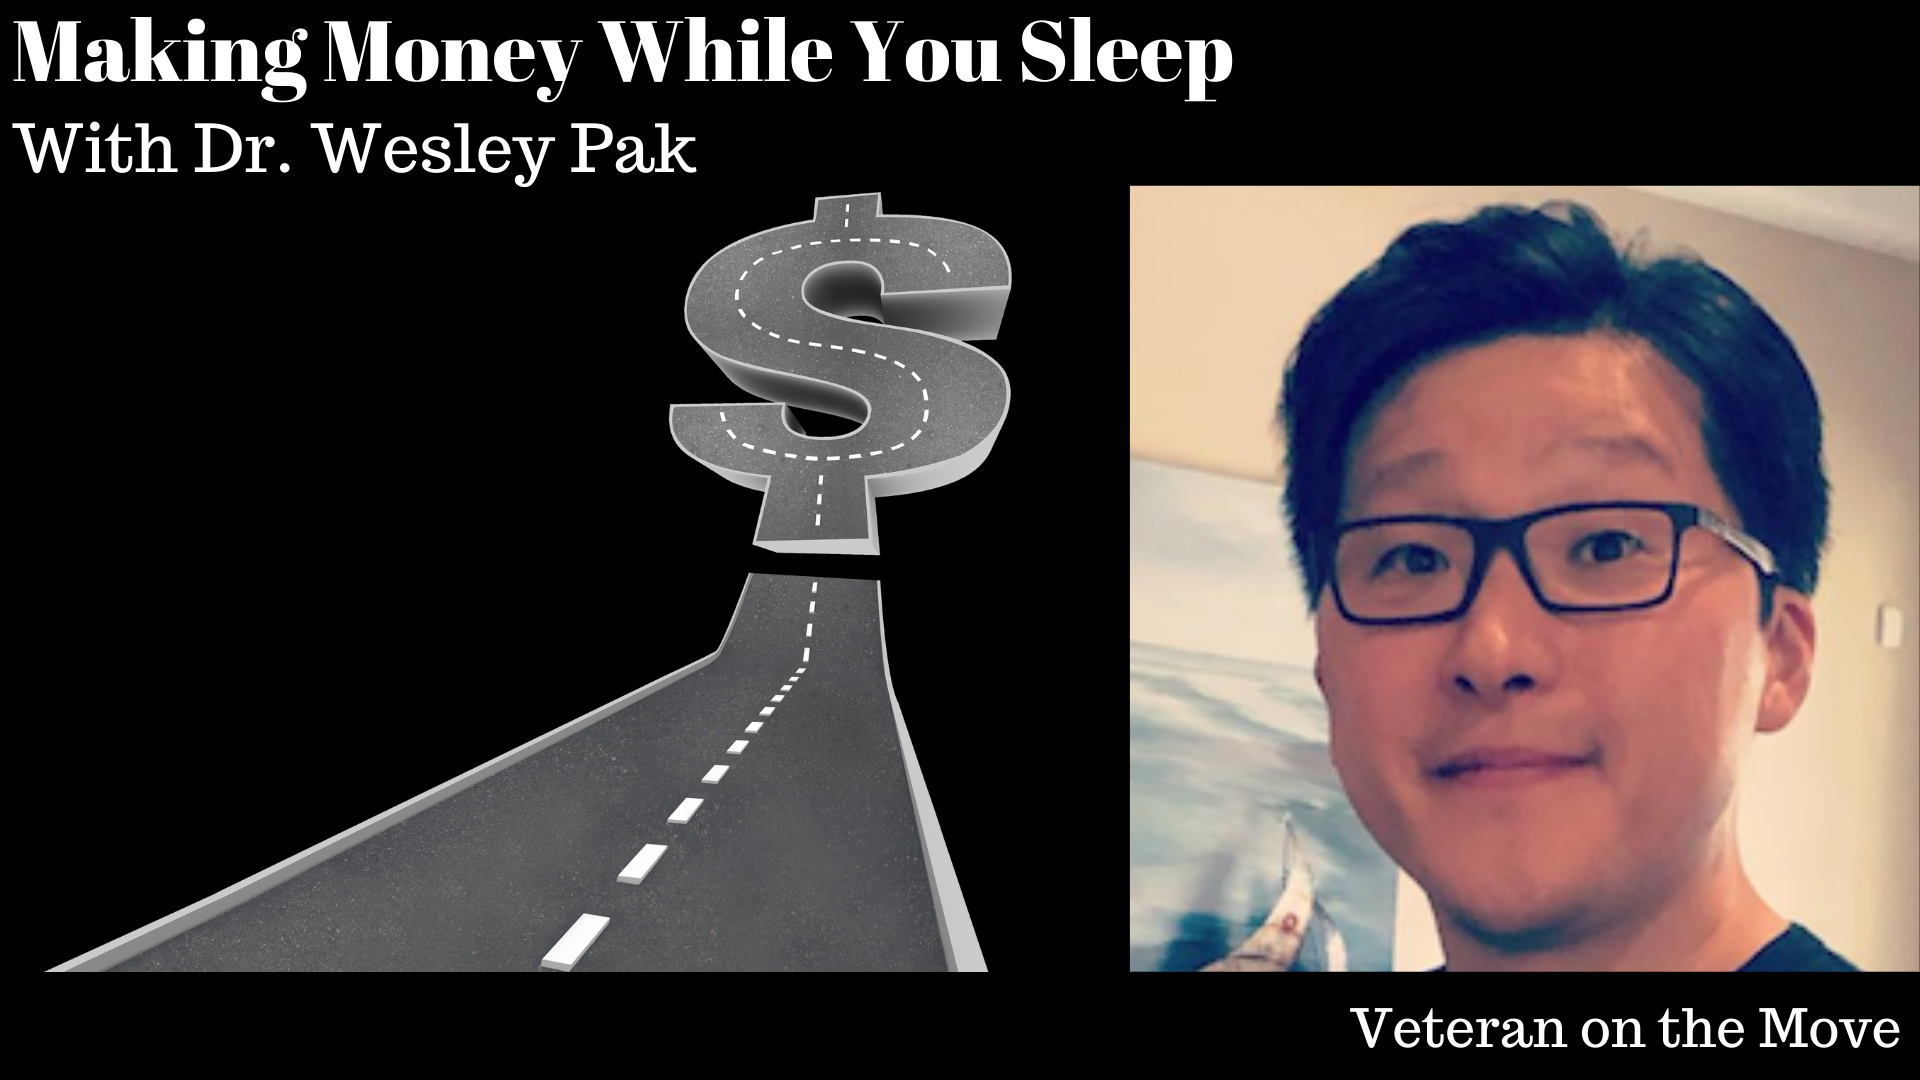 Wesley Pak, Veteran on the Move